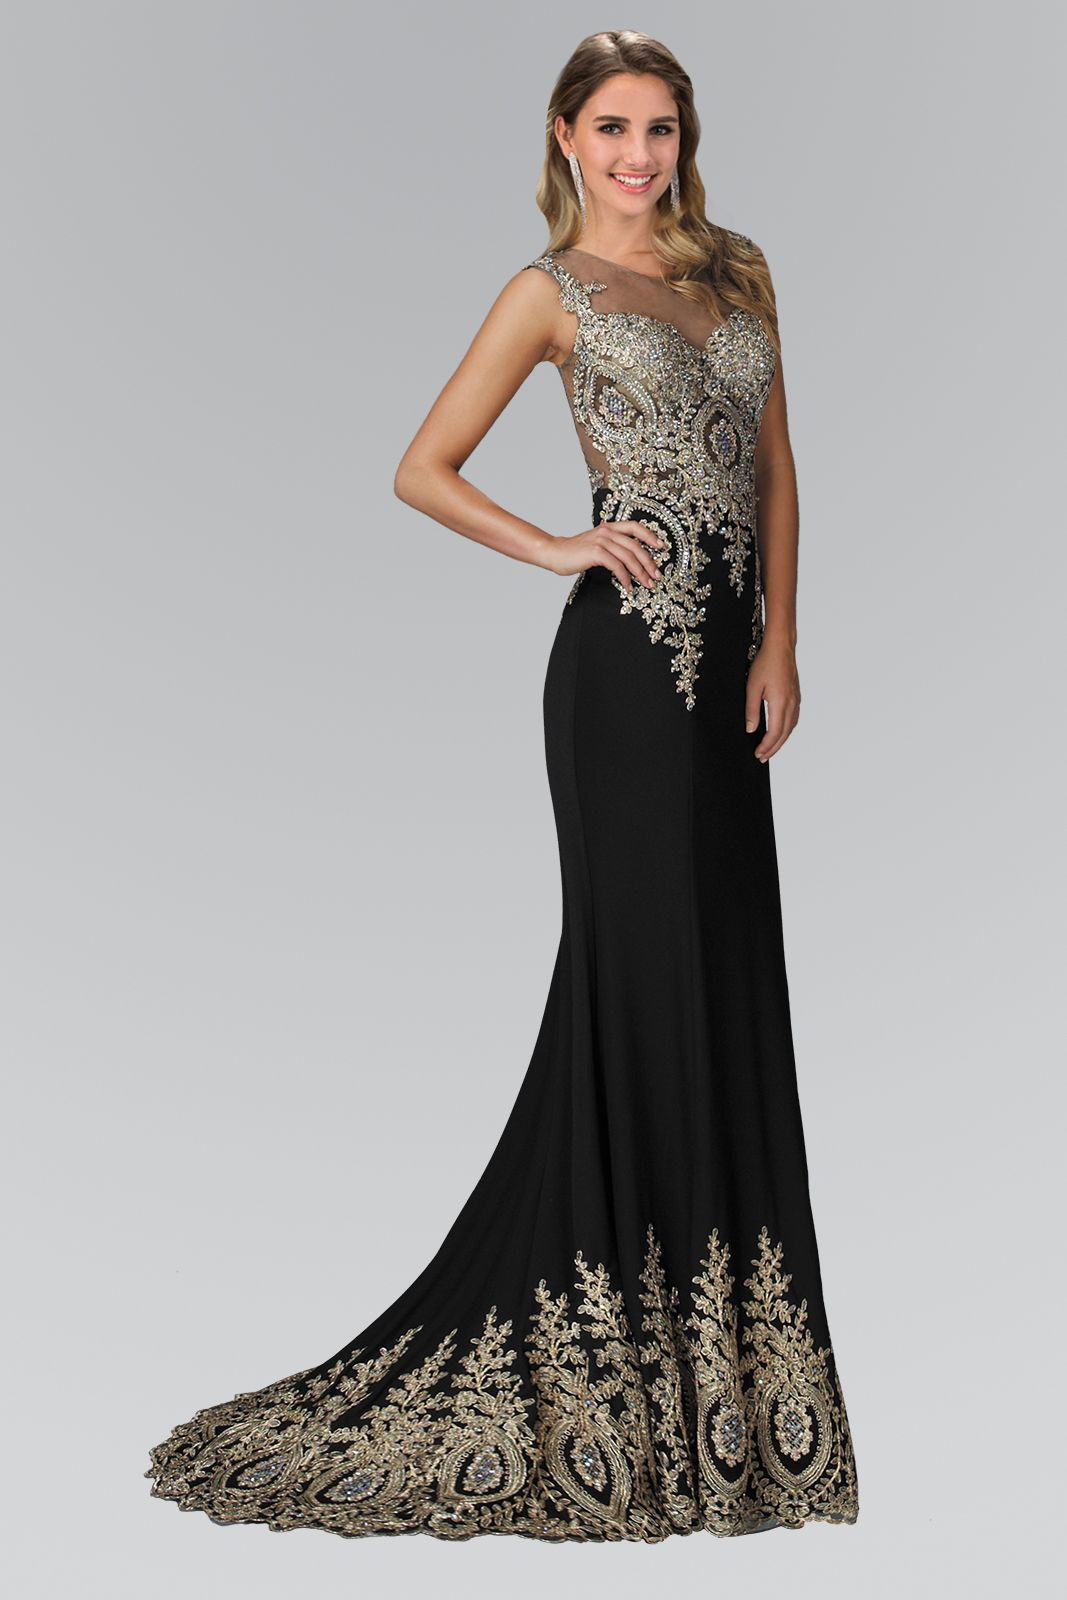 GLS APPAREL USA, INC - Dress Wholesale. GL2166 | Vestidos ...